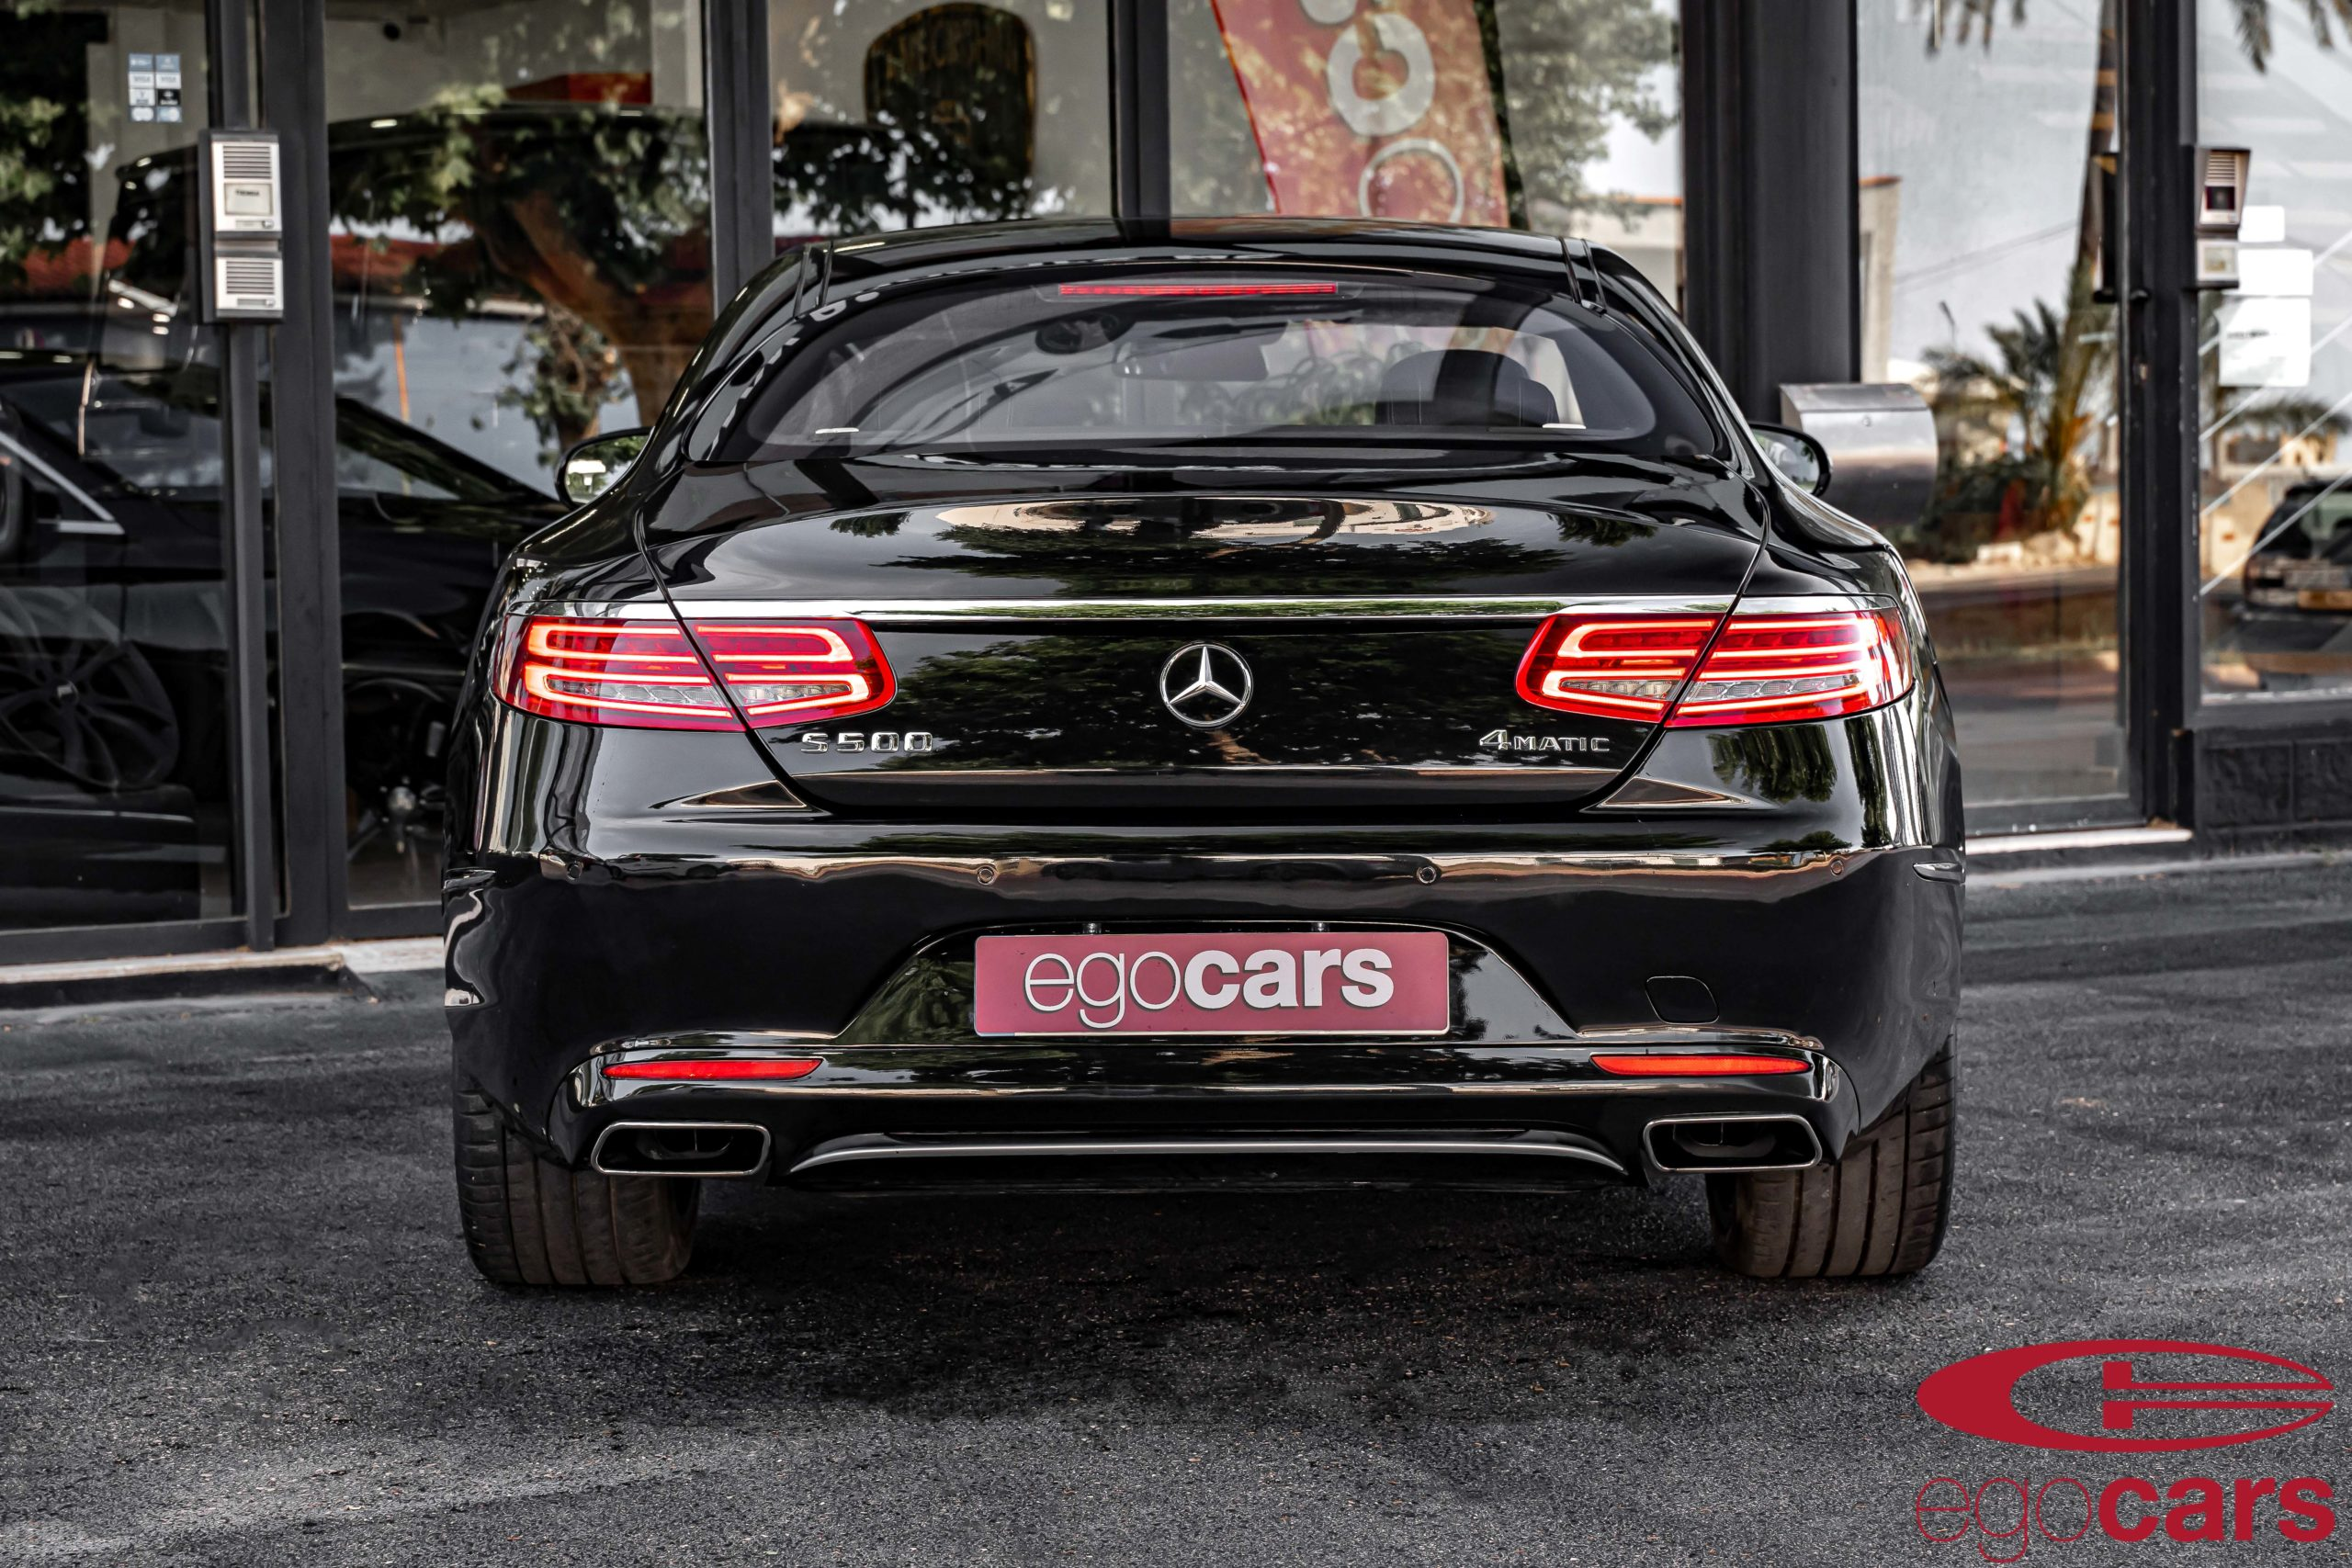 S500 COUPE 4MATIC NEGRO EGOCARS_10